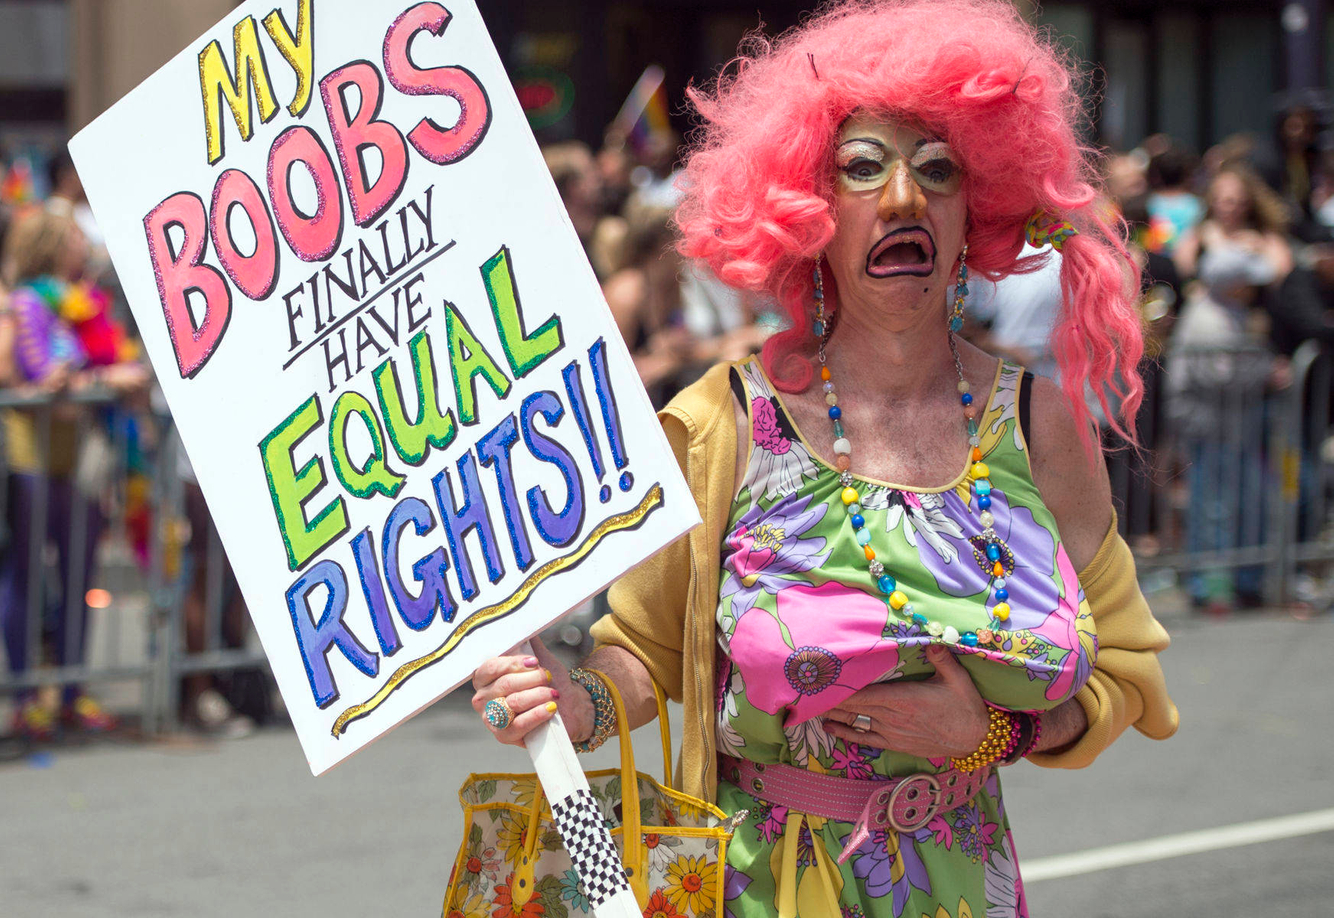 GAY RIGHTS: A man marches in a gay pride parade